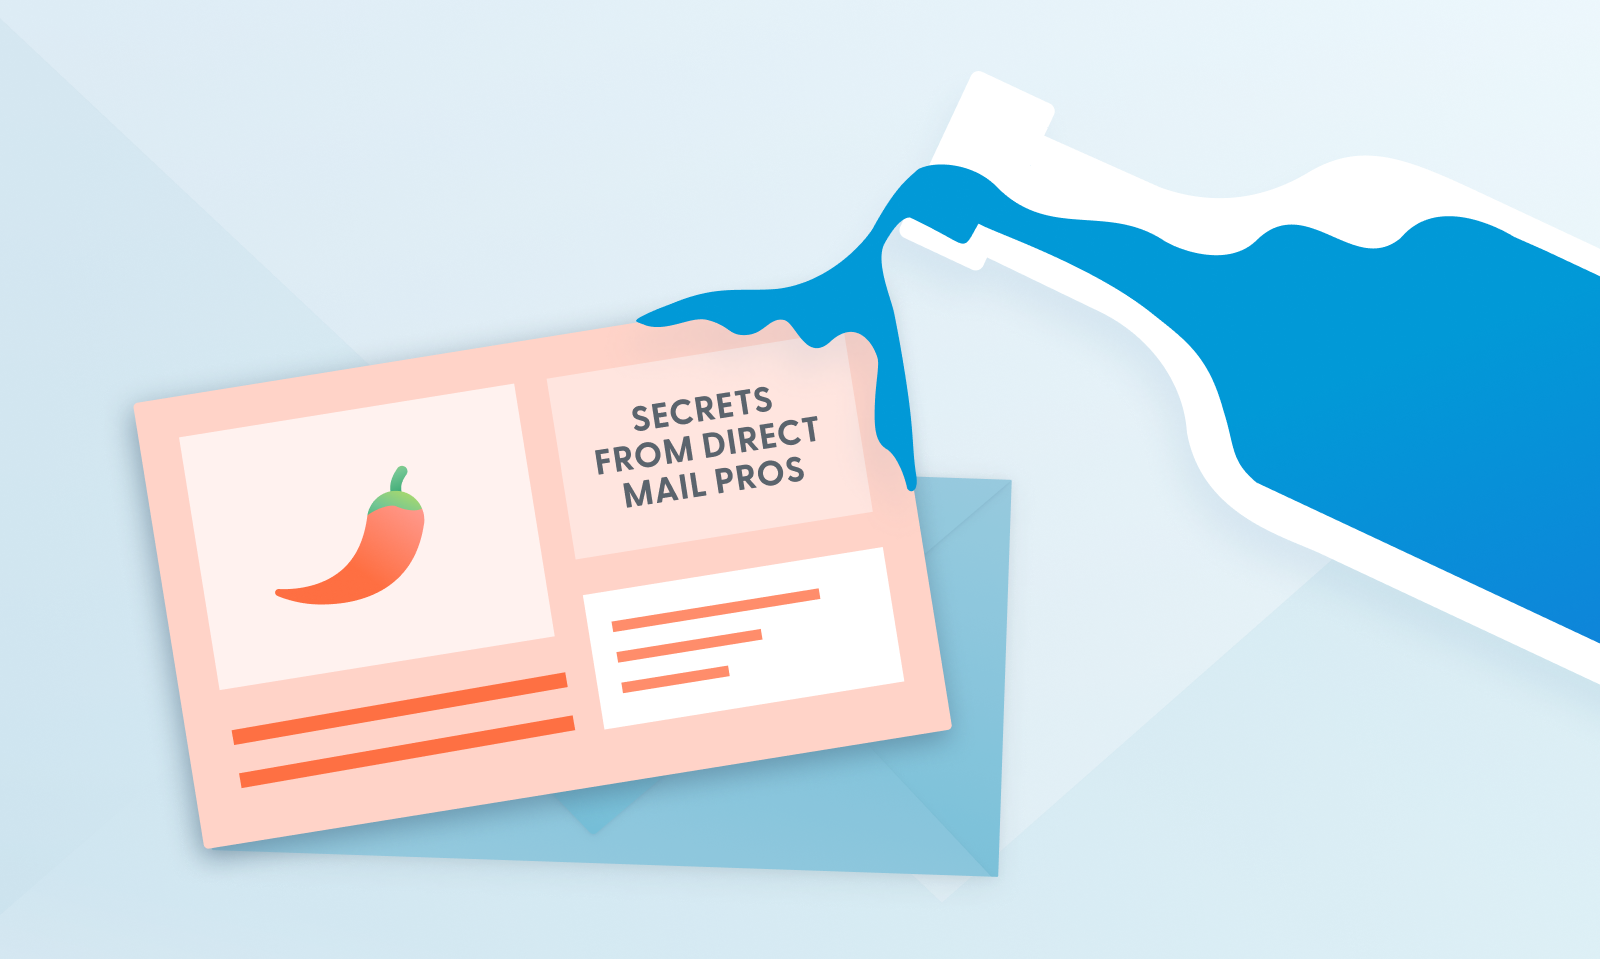 Hot Sauce & Success with Direct Mail Pros